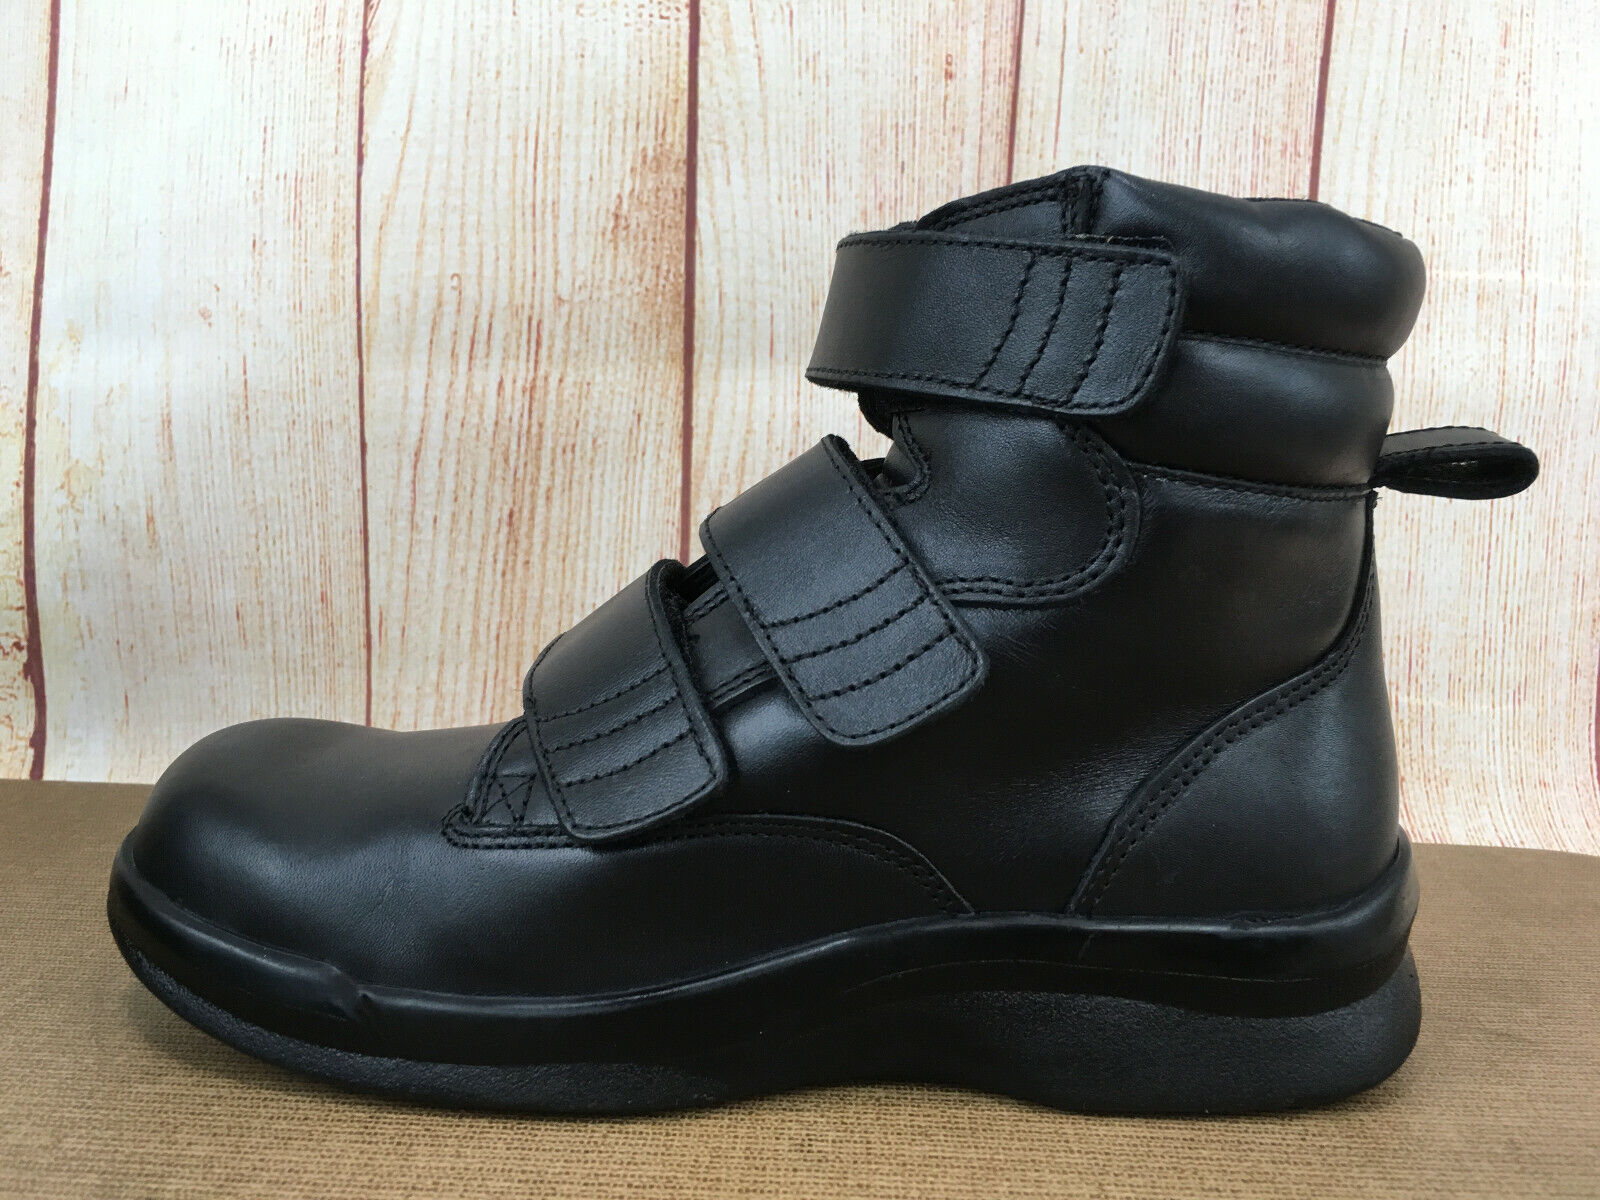 Apex Ambulator Biomechanical Triple Strap Blk Boot BV4200MM65 Men Sz 6.5 M A77(5